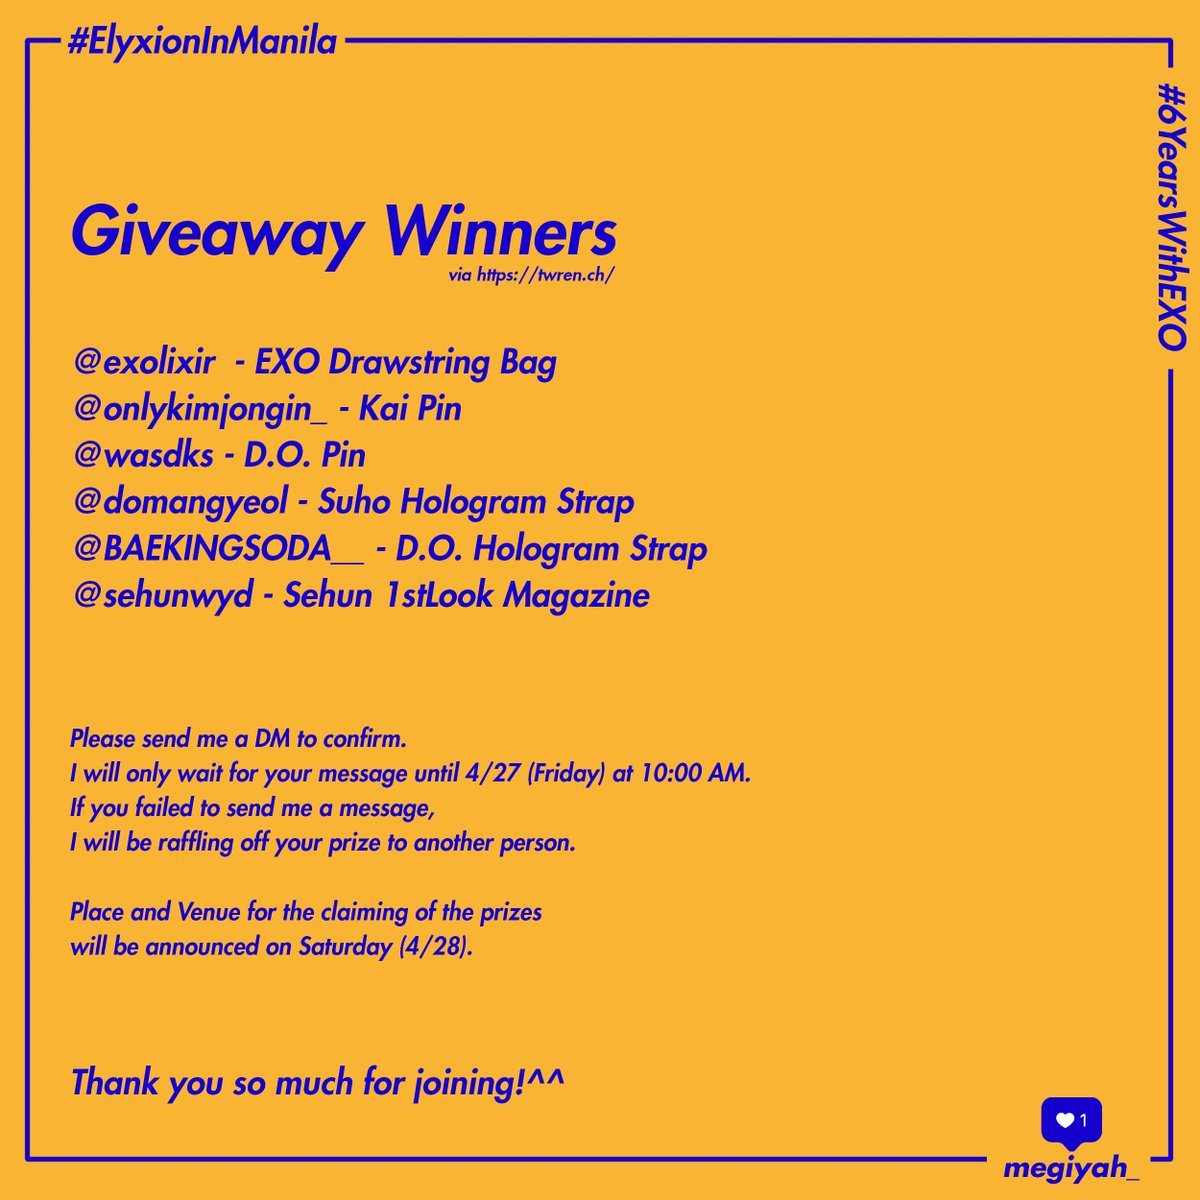 Megiyah&#39;s #6YearsWithEXO and #ElyXiOinManila Giveaway Winners:  @exolixir @onlykimjongin_ @wasdks @domangyeol @BAEKINGSODA__ @sehunwyd  *Please read the poster for more details.   Thank you so much for joining!<br>http://pic.twitter.com/MgCXcCKFm6